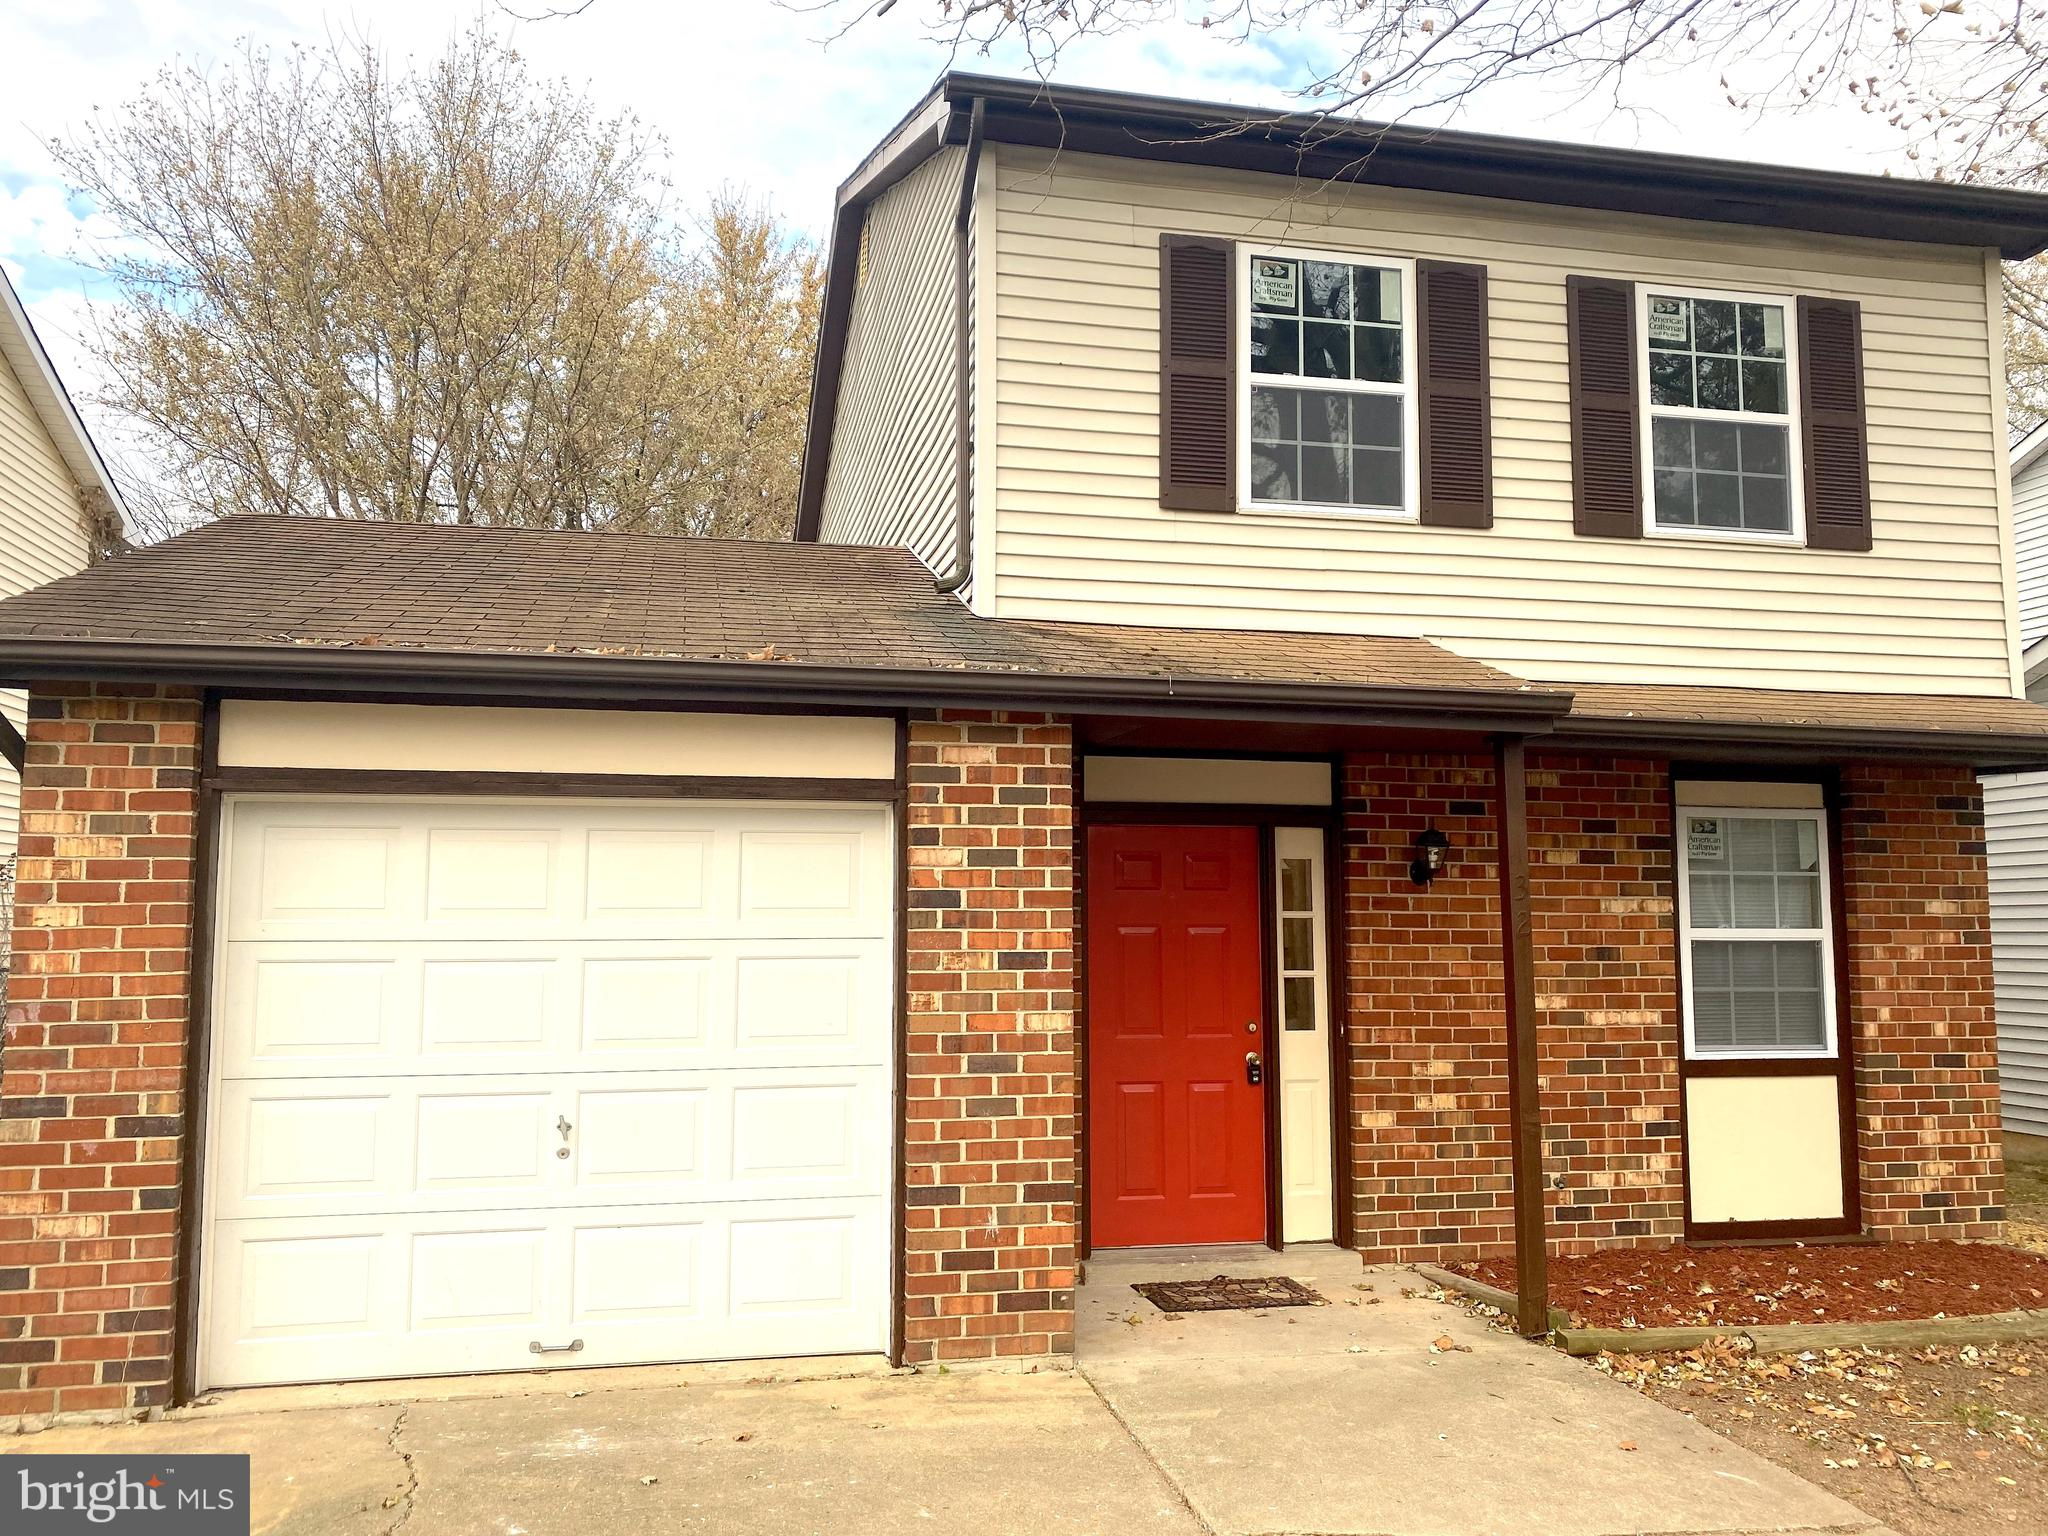 Totally and tastefully updated home in Buckley just waiting for a new owner.  Sellers have spared no